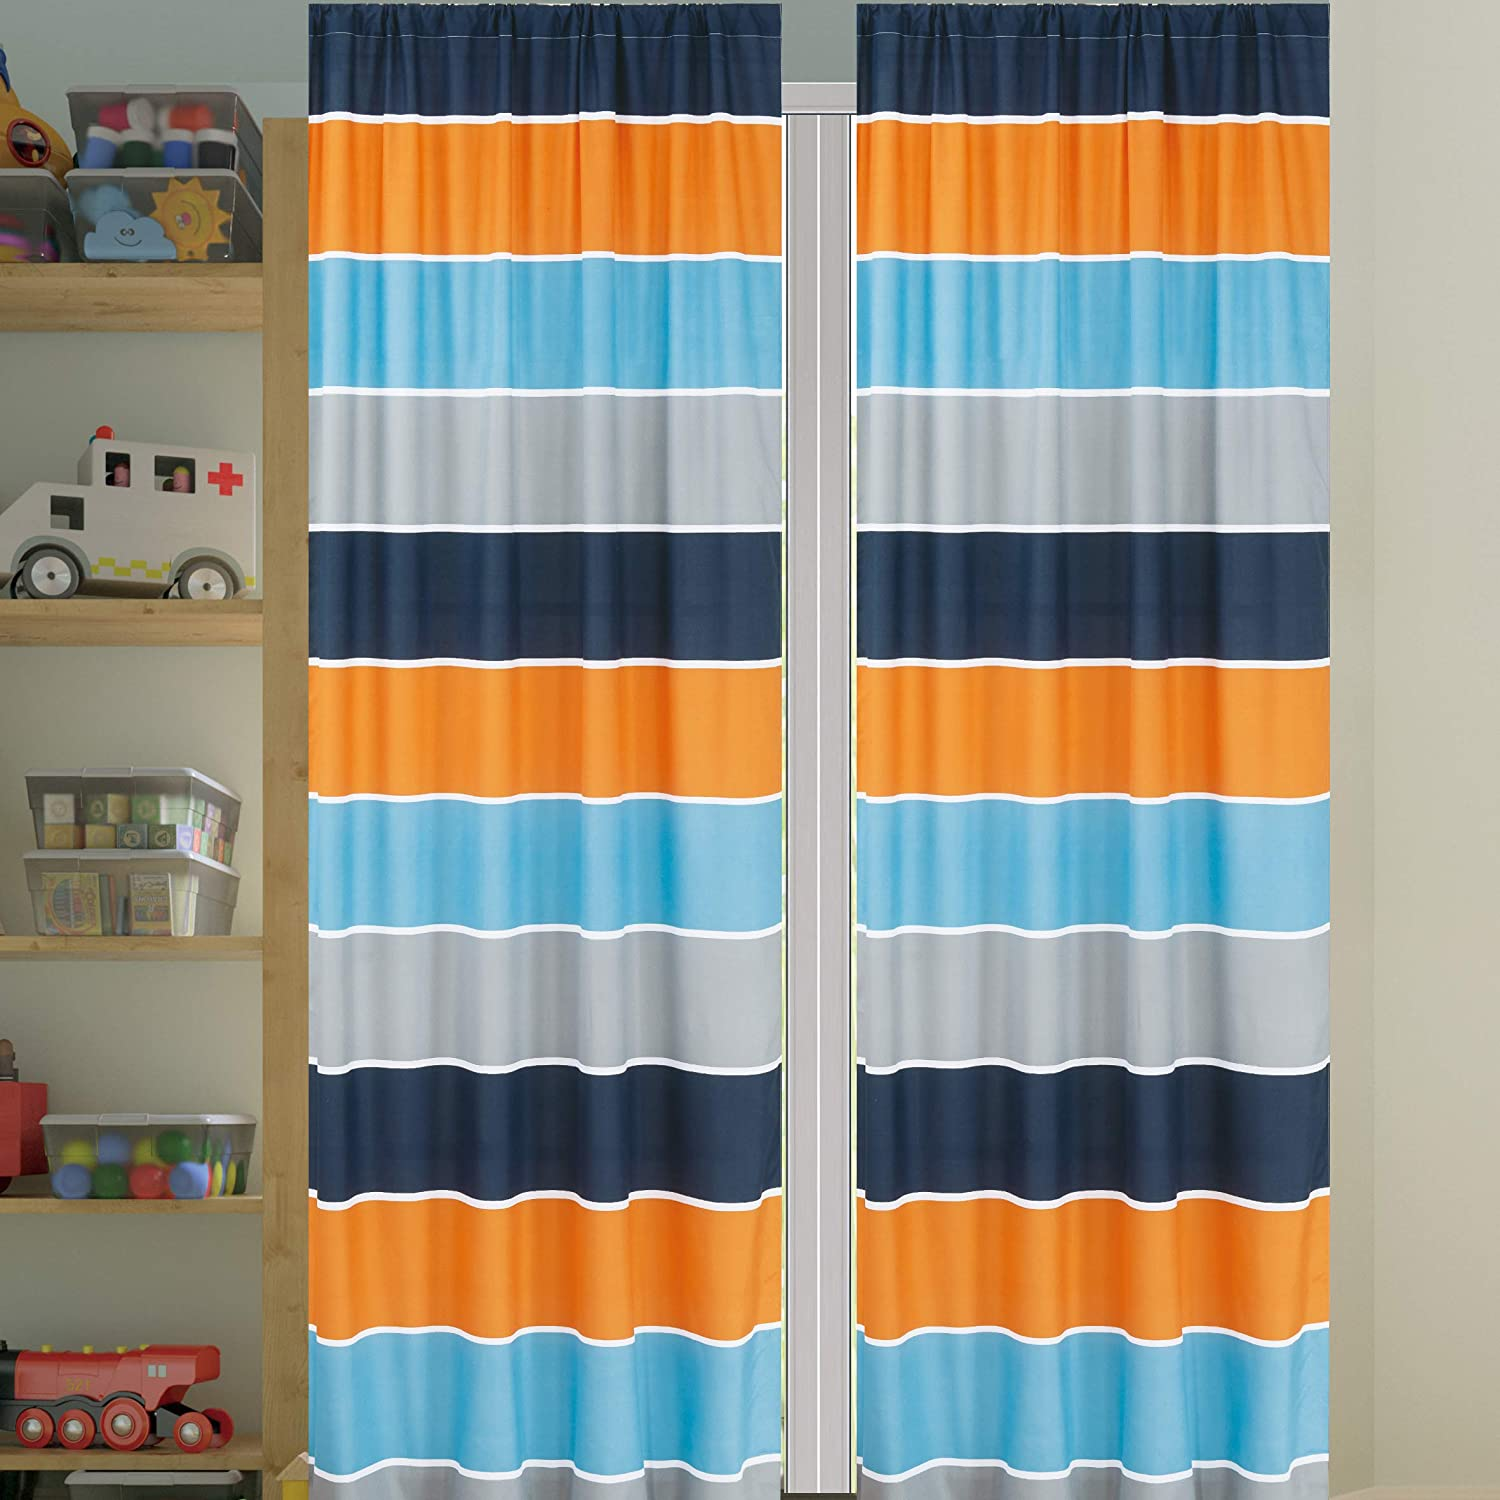 Sapphire Home 2 Panel Curtain Set, Blue Orange Gray Stripes Print Multicolor Boys Kids Girls Teen Room Décor, (Kids Stripe, Curtain)